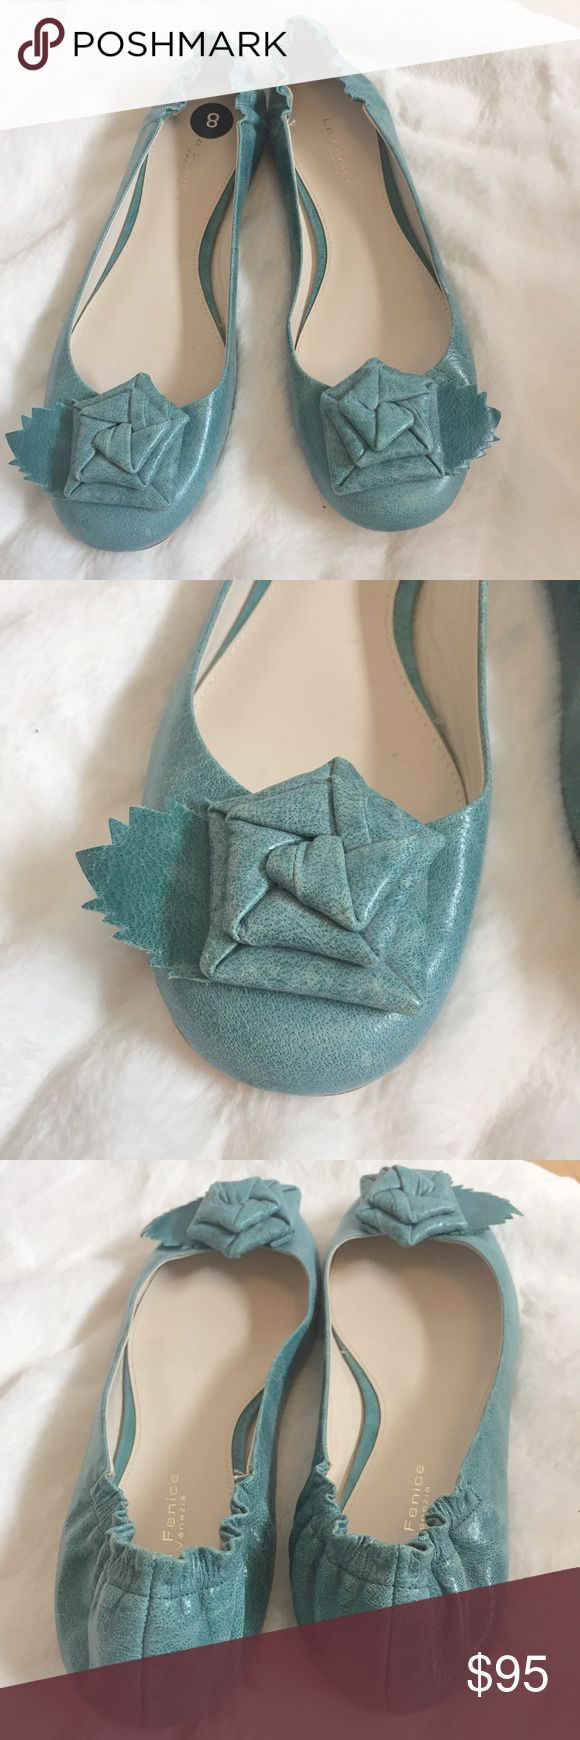 Neiman Marcus | Vero Cuoio Flats Ballet style flats by La Fenice purchased at Neiman Marcus. Antique style leather (robins egg blue color) with a flower at the toe. Scrunched back, comfortable! New without box no flaws. Neiman Marcus Shoes Flats & Loafers